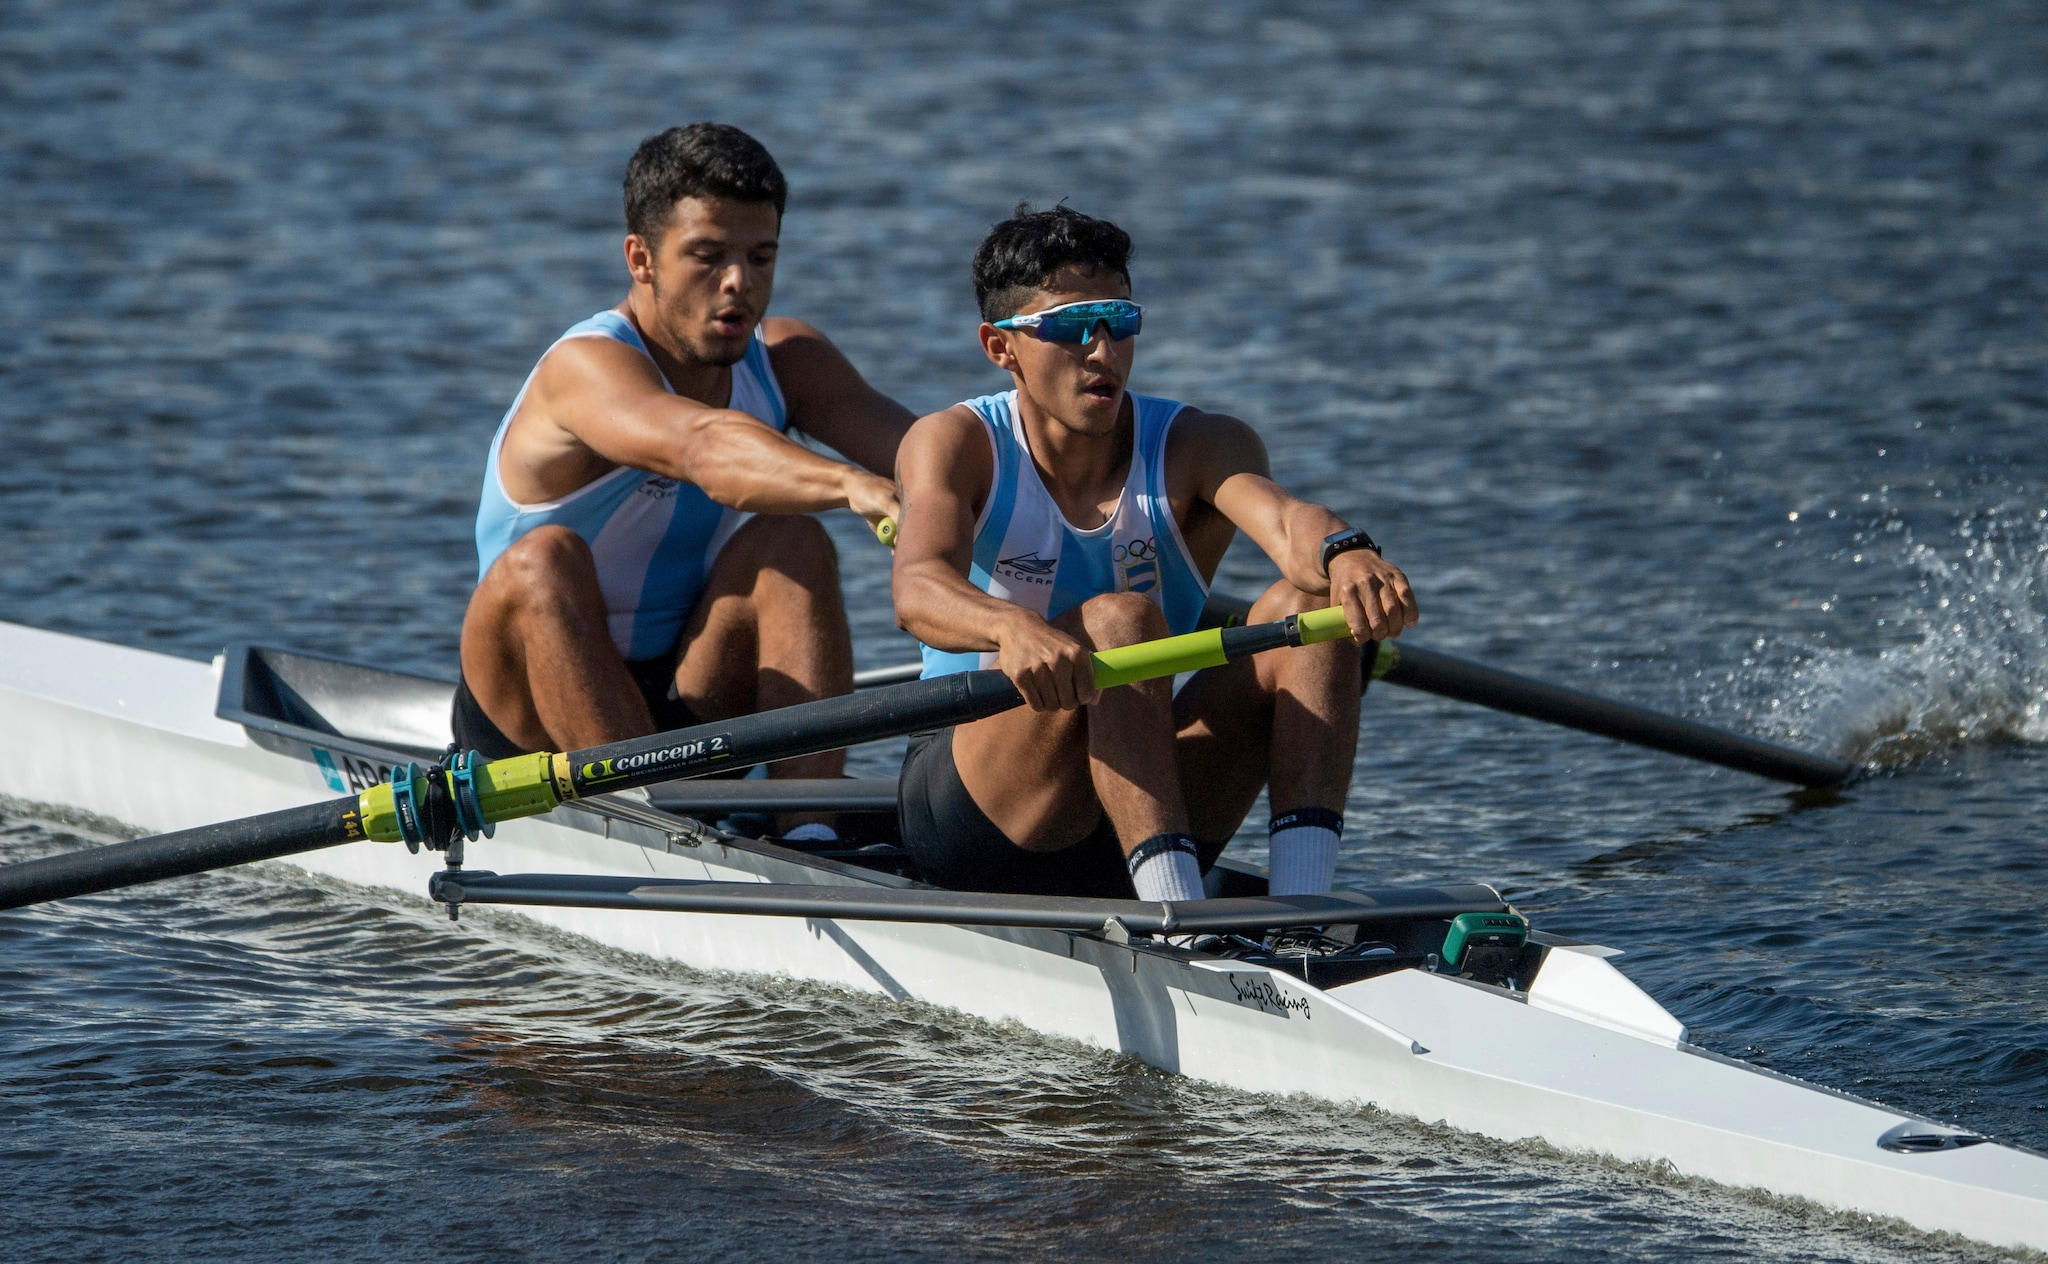 Tomas Herrera and Felipe Modarelli from Argentina row in the men's pairs at The Diques Puerto Madero, during the Youth Olympic Games in Buenos Aires, Argentina, Wednesday, Oct. 10, 2018. (Joel Marklund/OIS/IOC via AP)